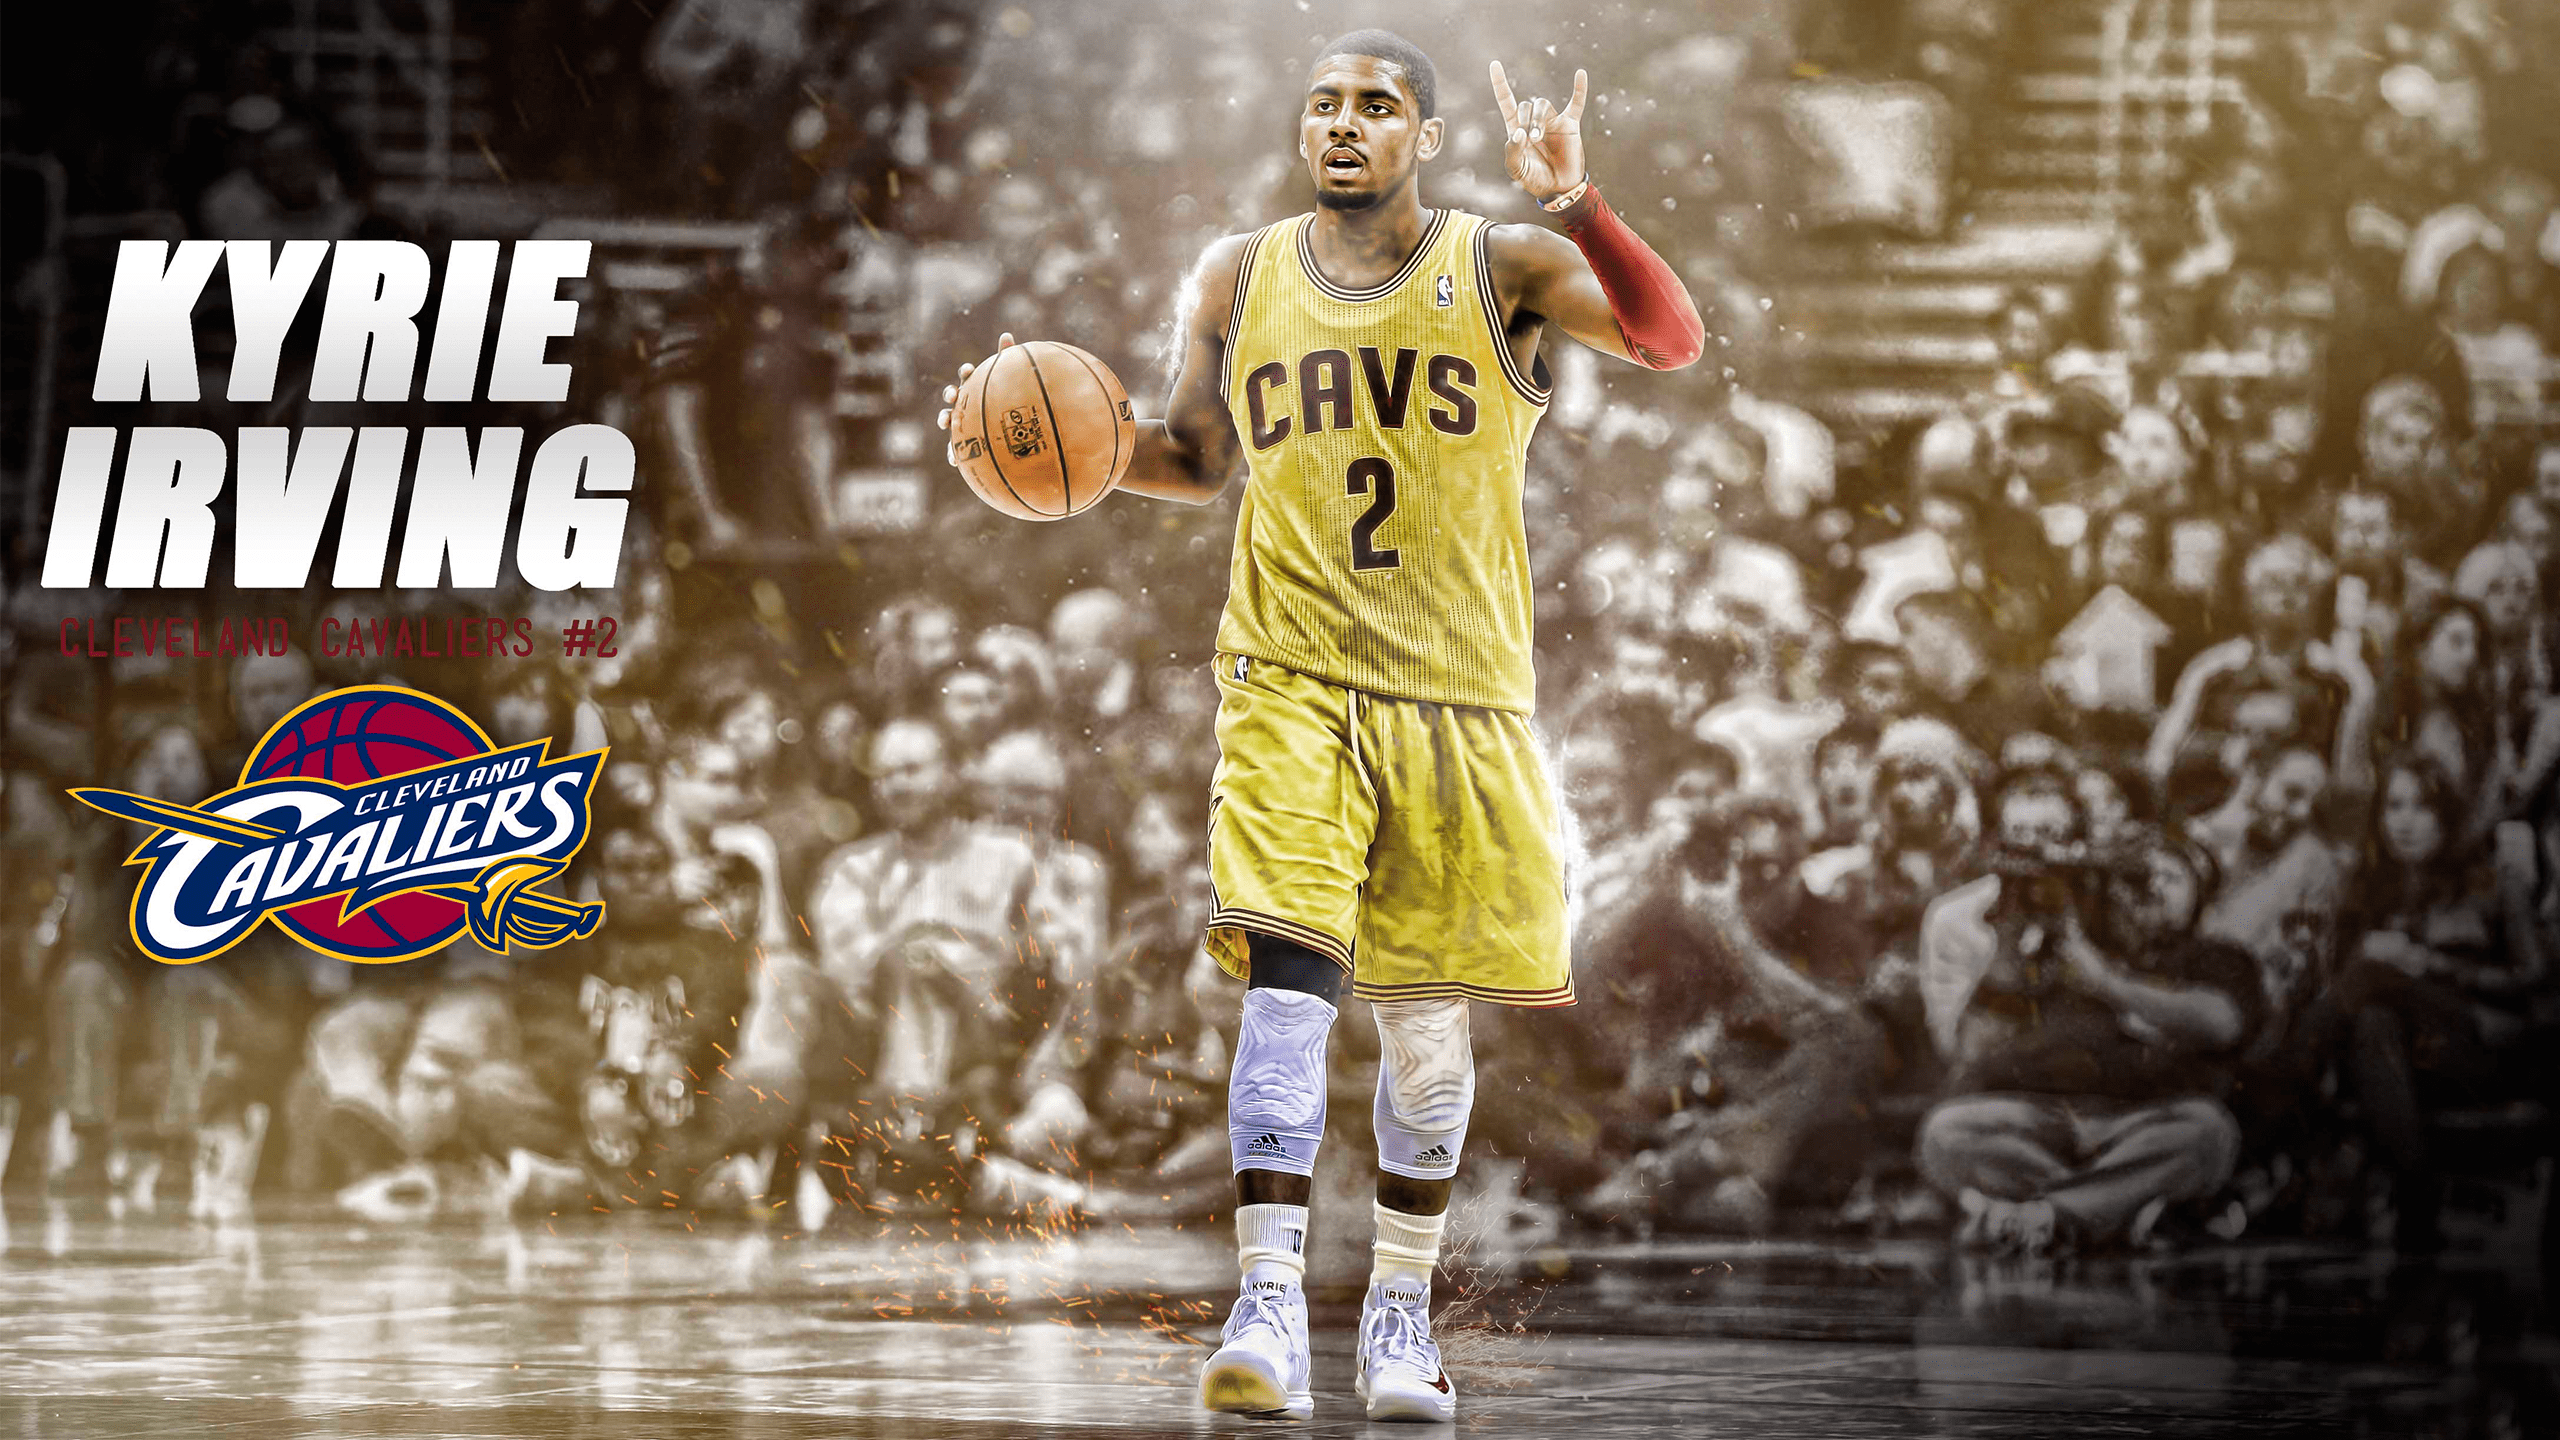 Kyrie Irving widescreen wallpapers